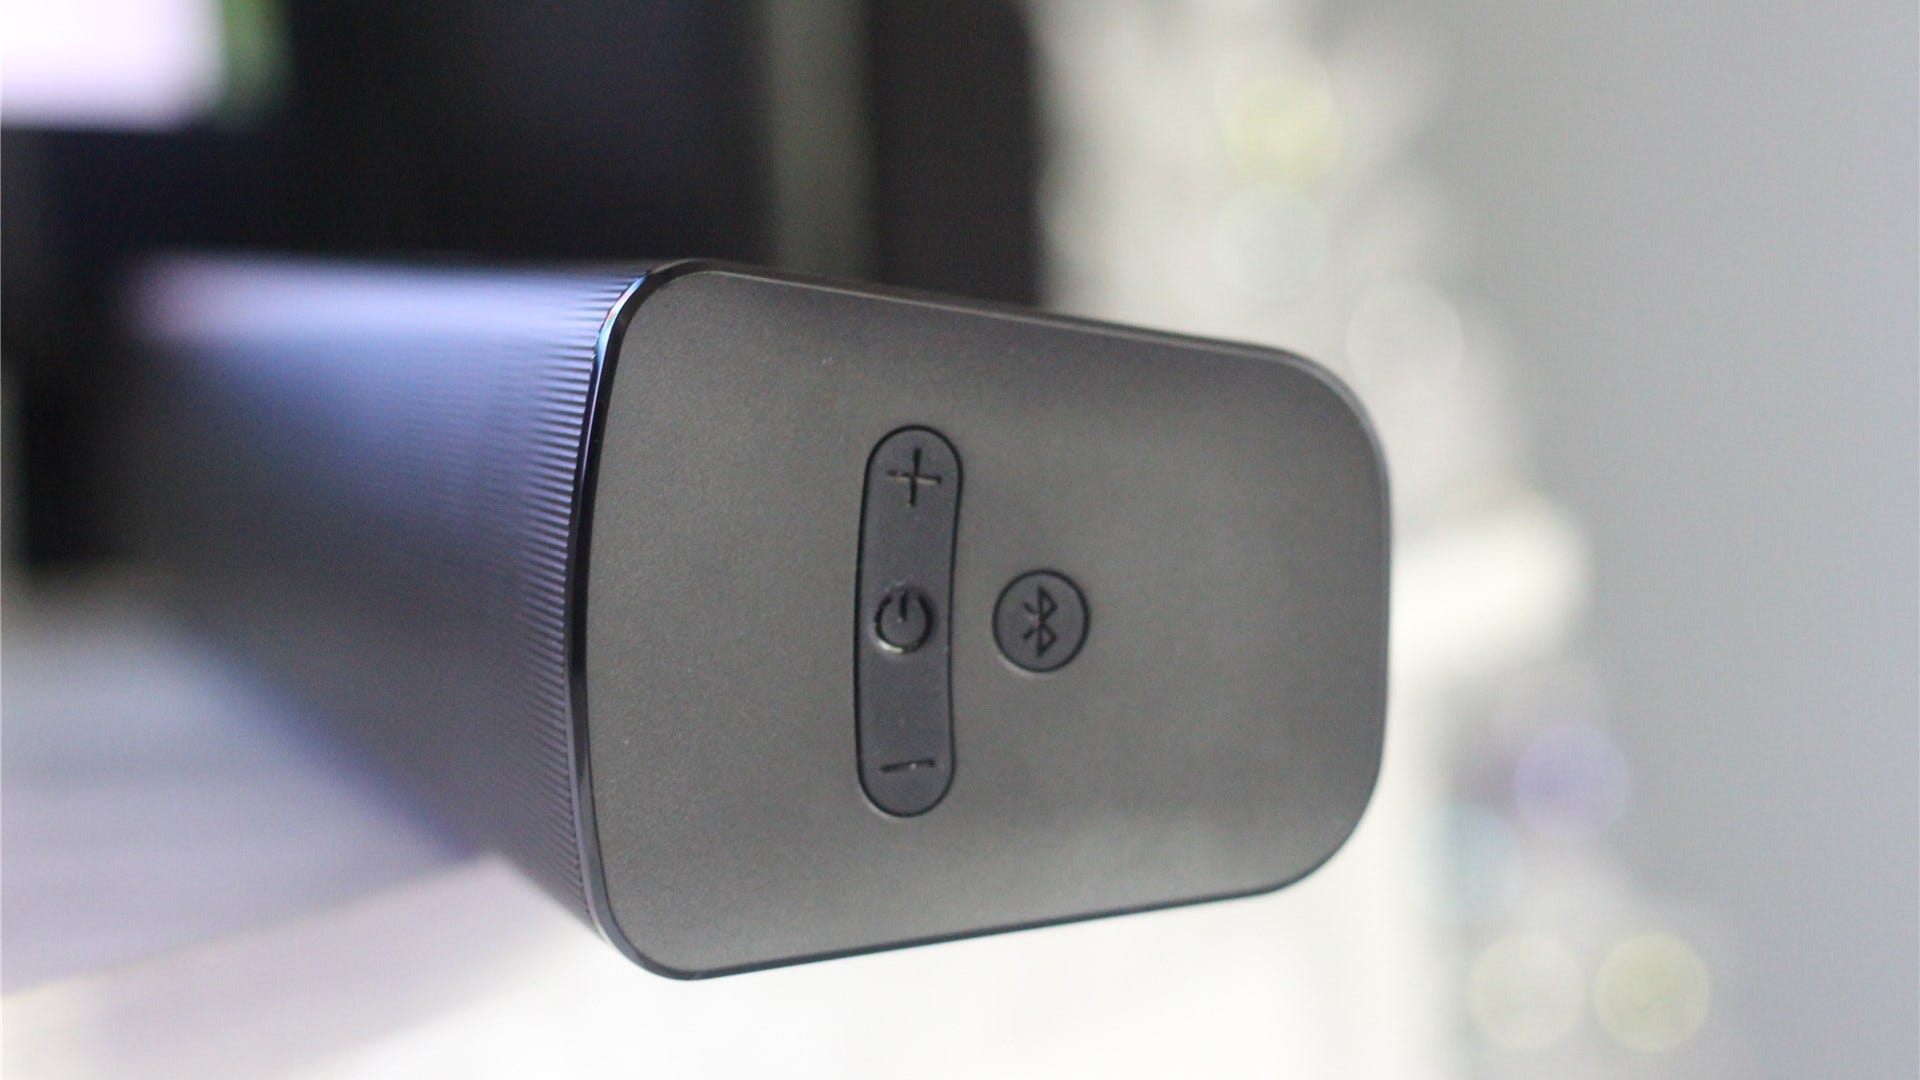 The Stage V2's power button, volume rocker, and Bluetooth button